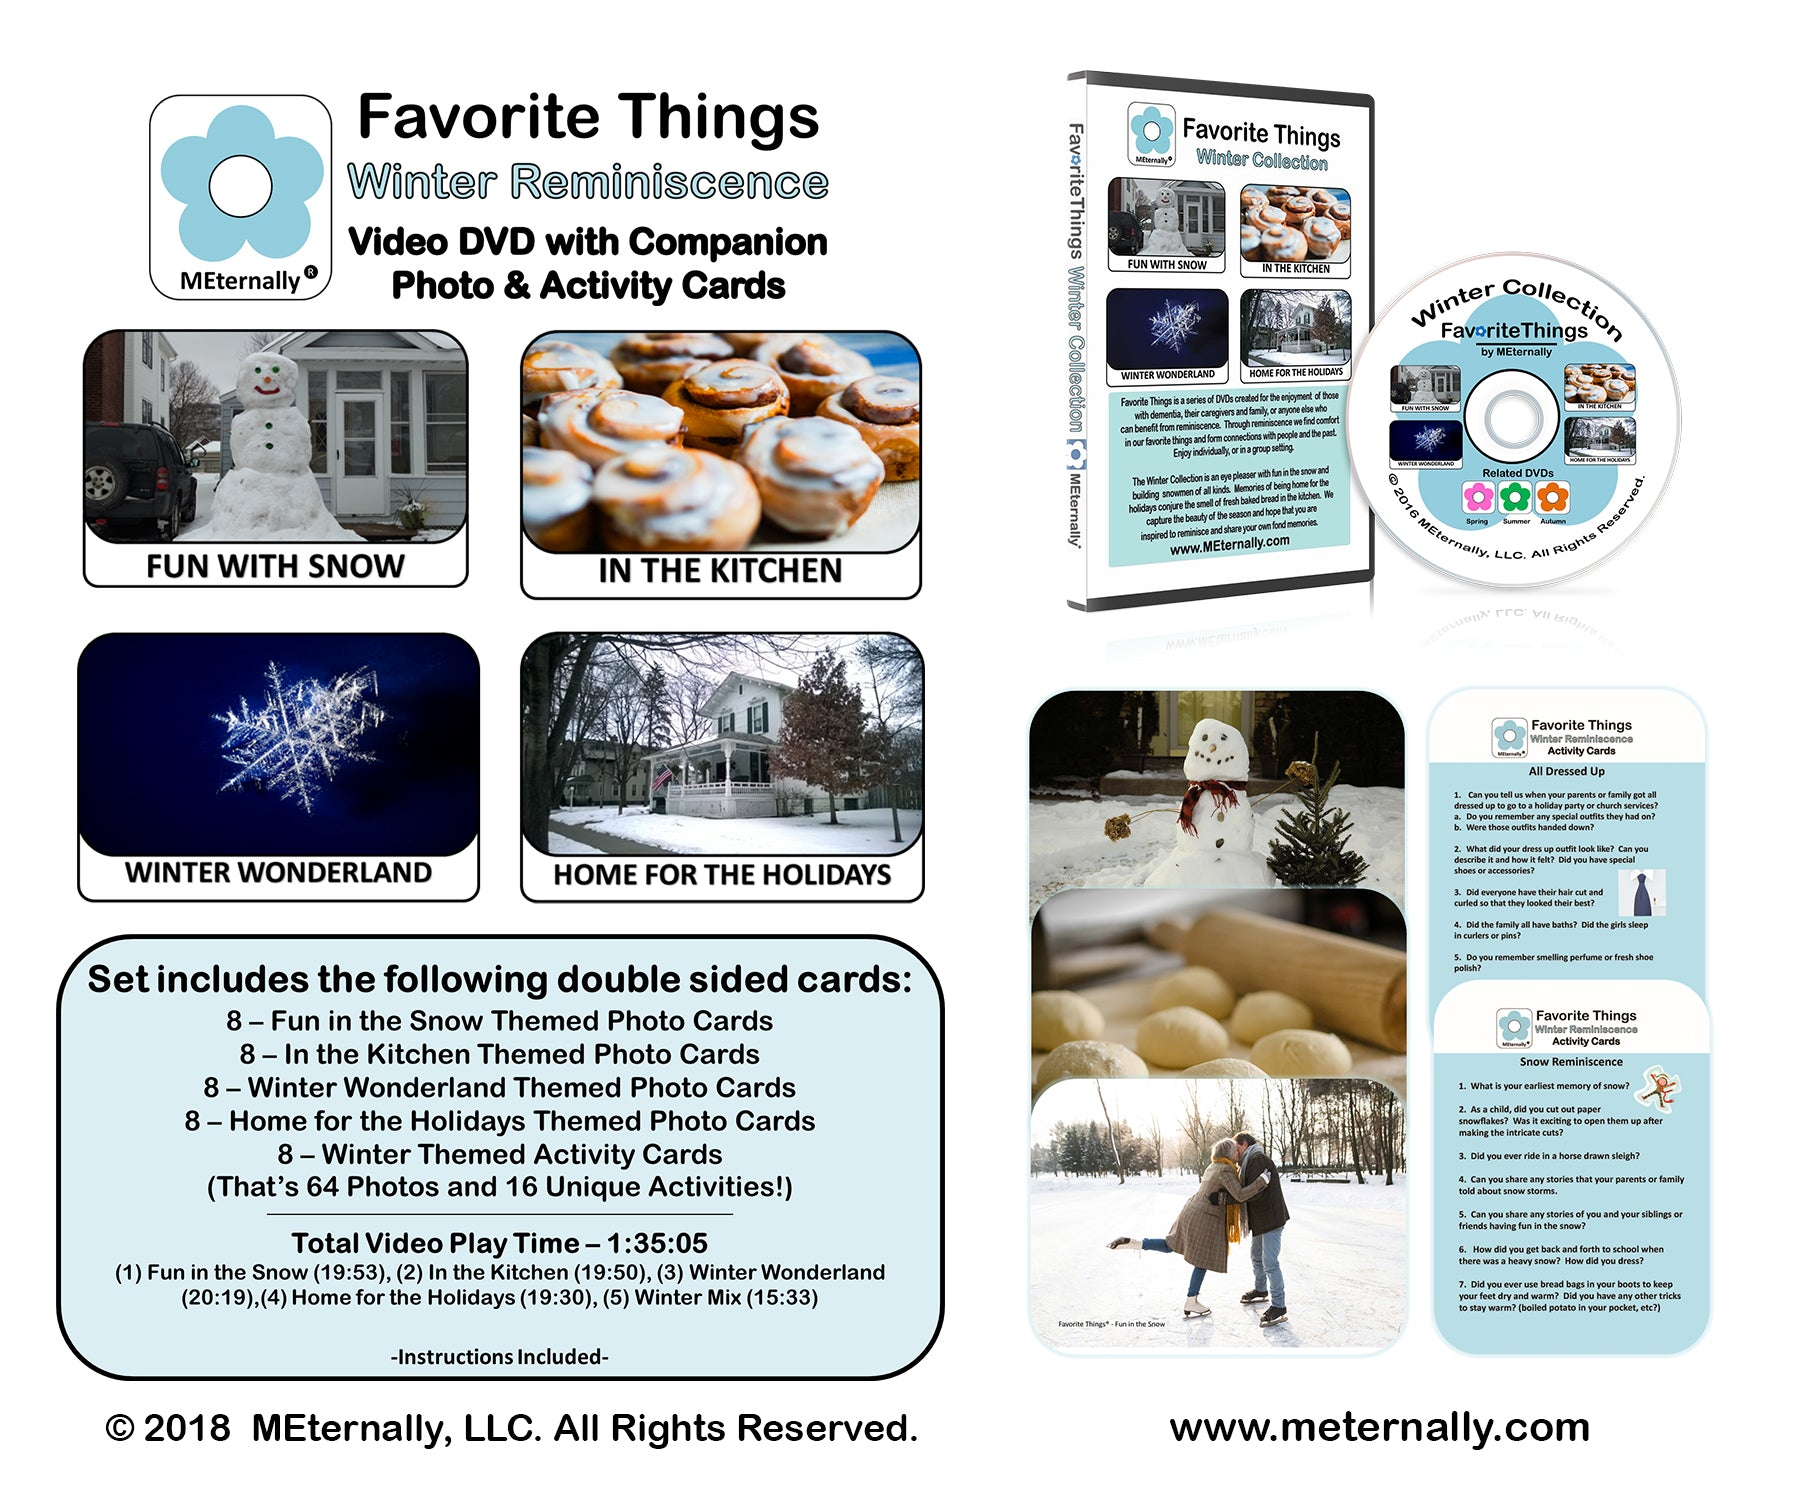 Library/Facility Pack - Reminiscence Therapy - Winter DVD & Photo/Activity Cards Kit